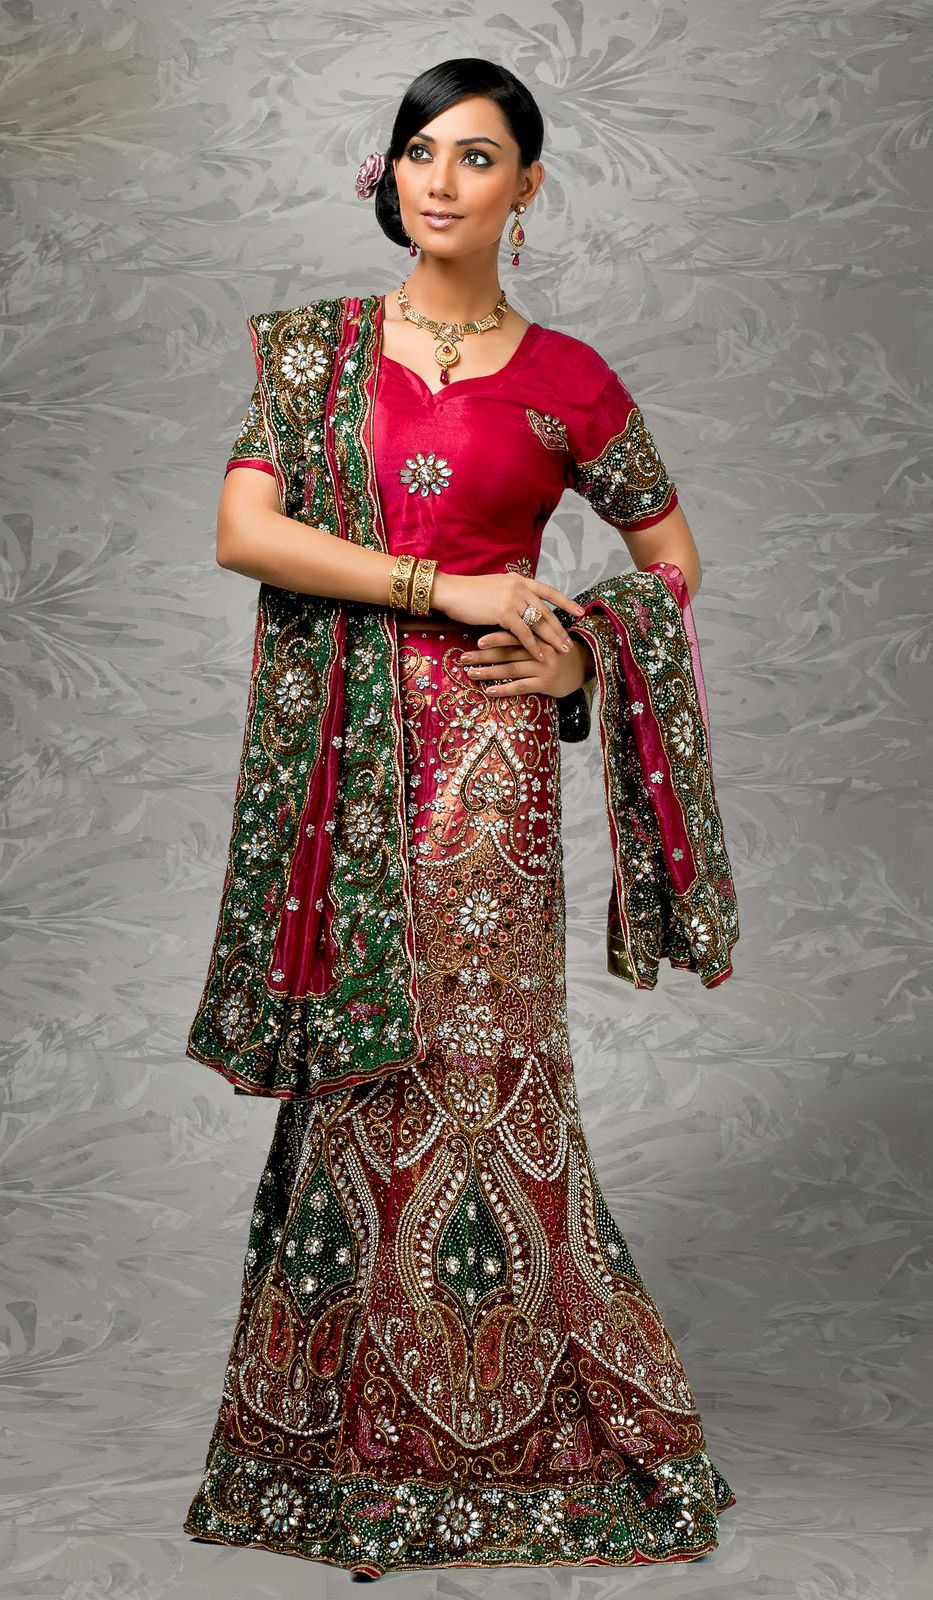 Image result for red greenbrocade lehenga